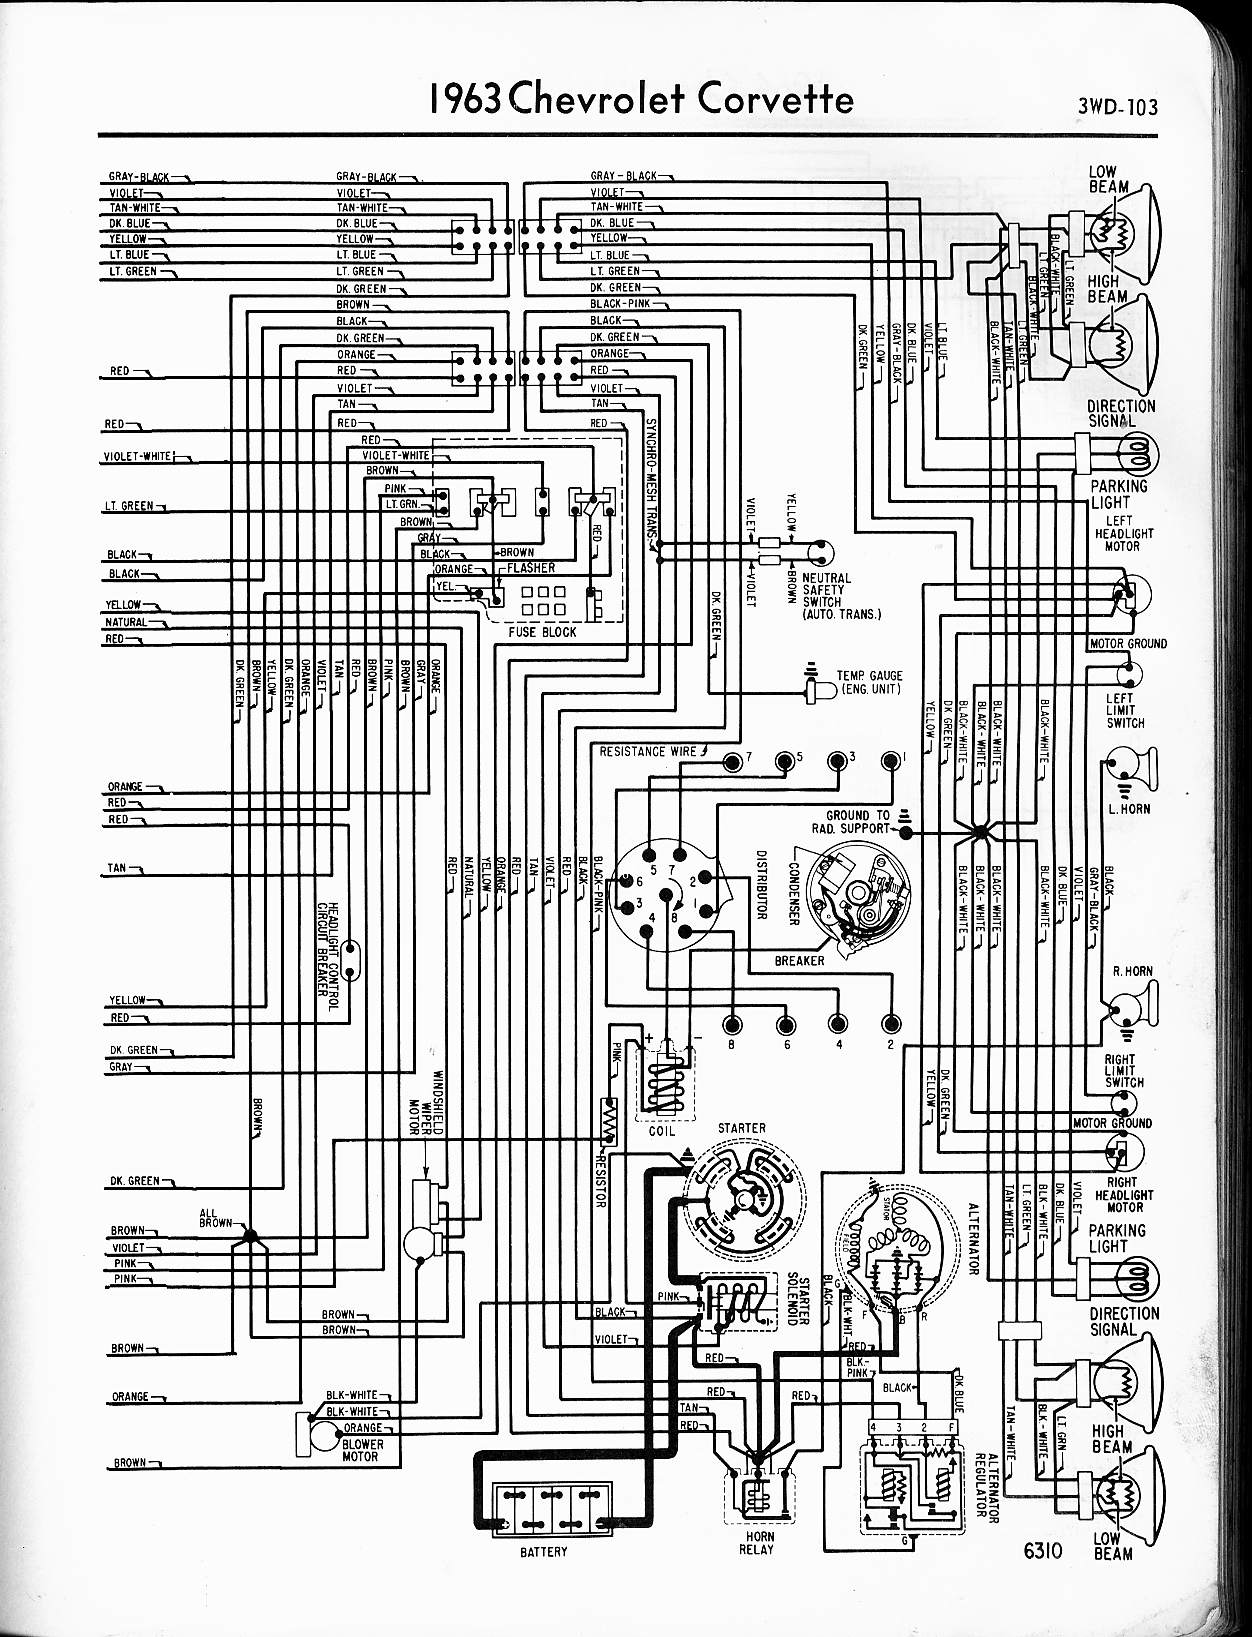 57 65 chevy wiring diagrams 1963 corvette wiring diagram 1963 Corvette Wiring Diagram #1 1963  sc 1 st  MiFinder : 1974 chevy truck wiring diagram - yogabreezes.com